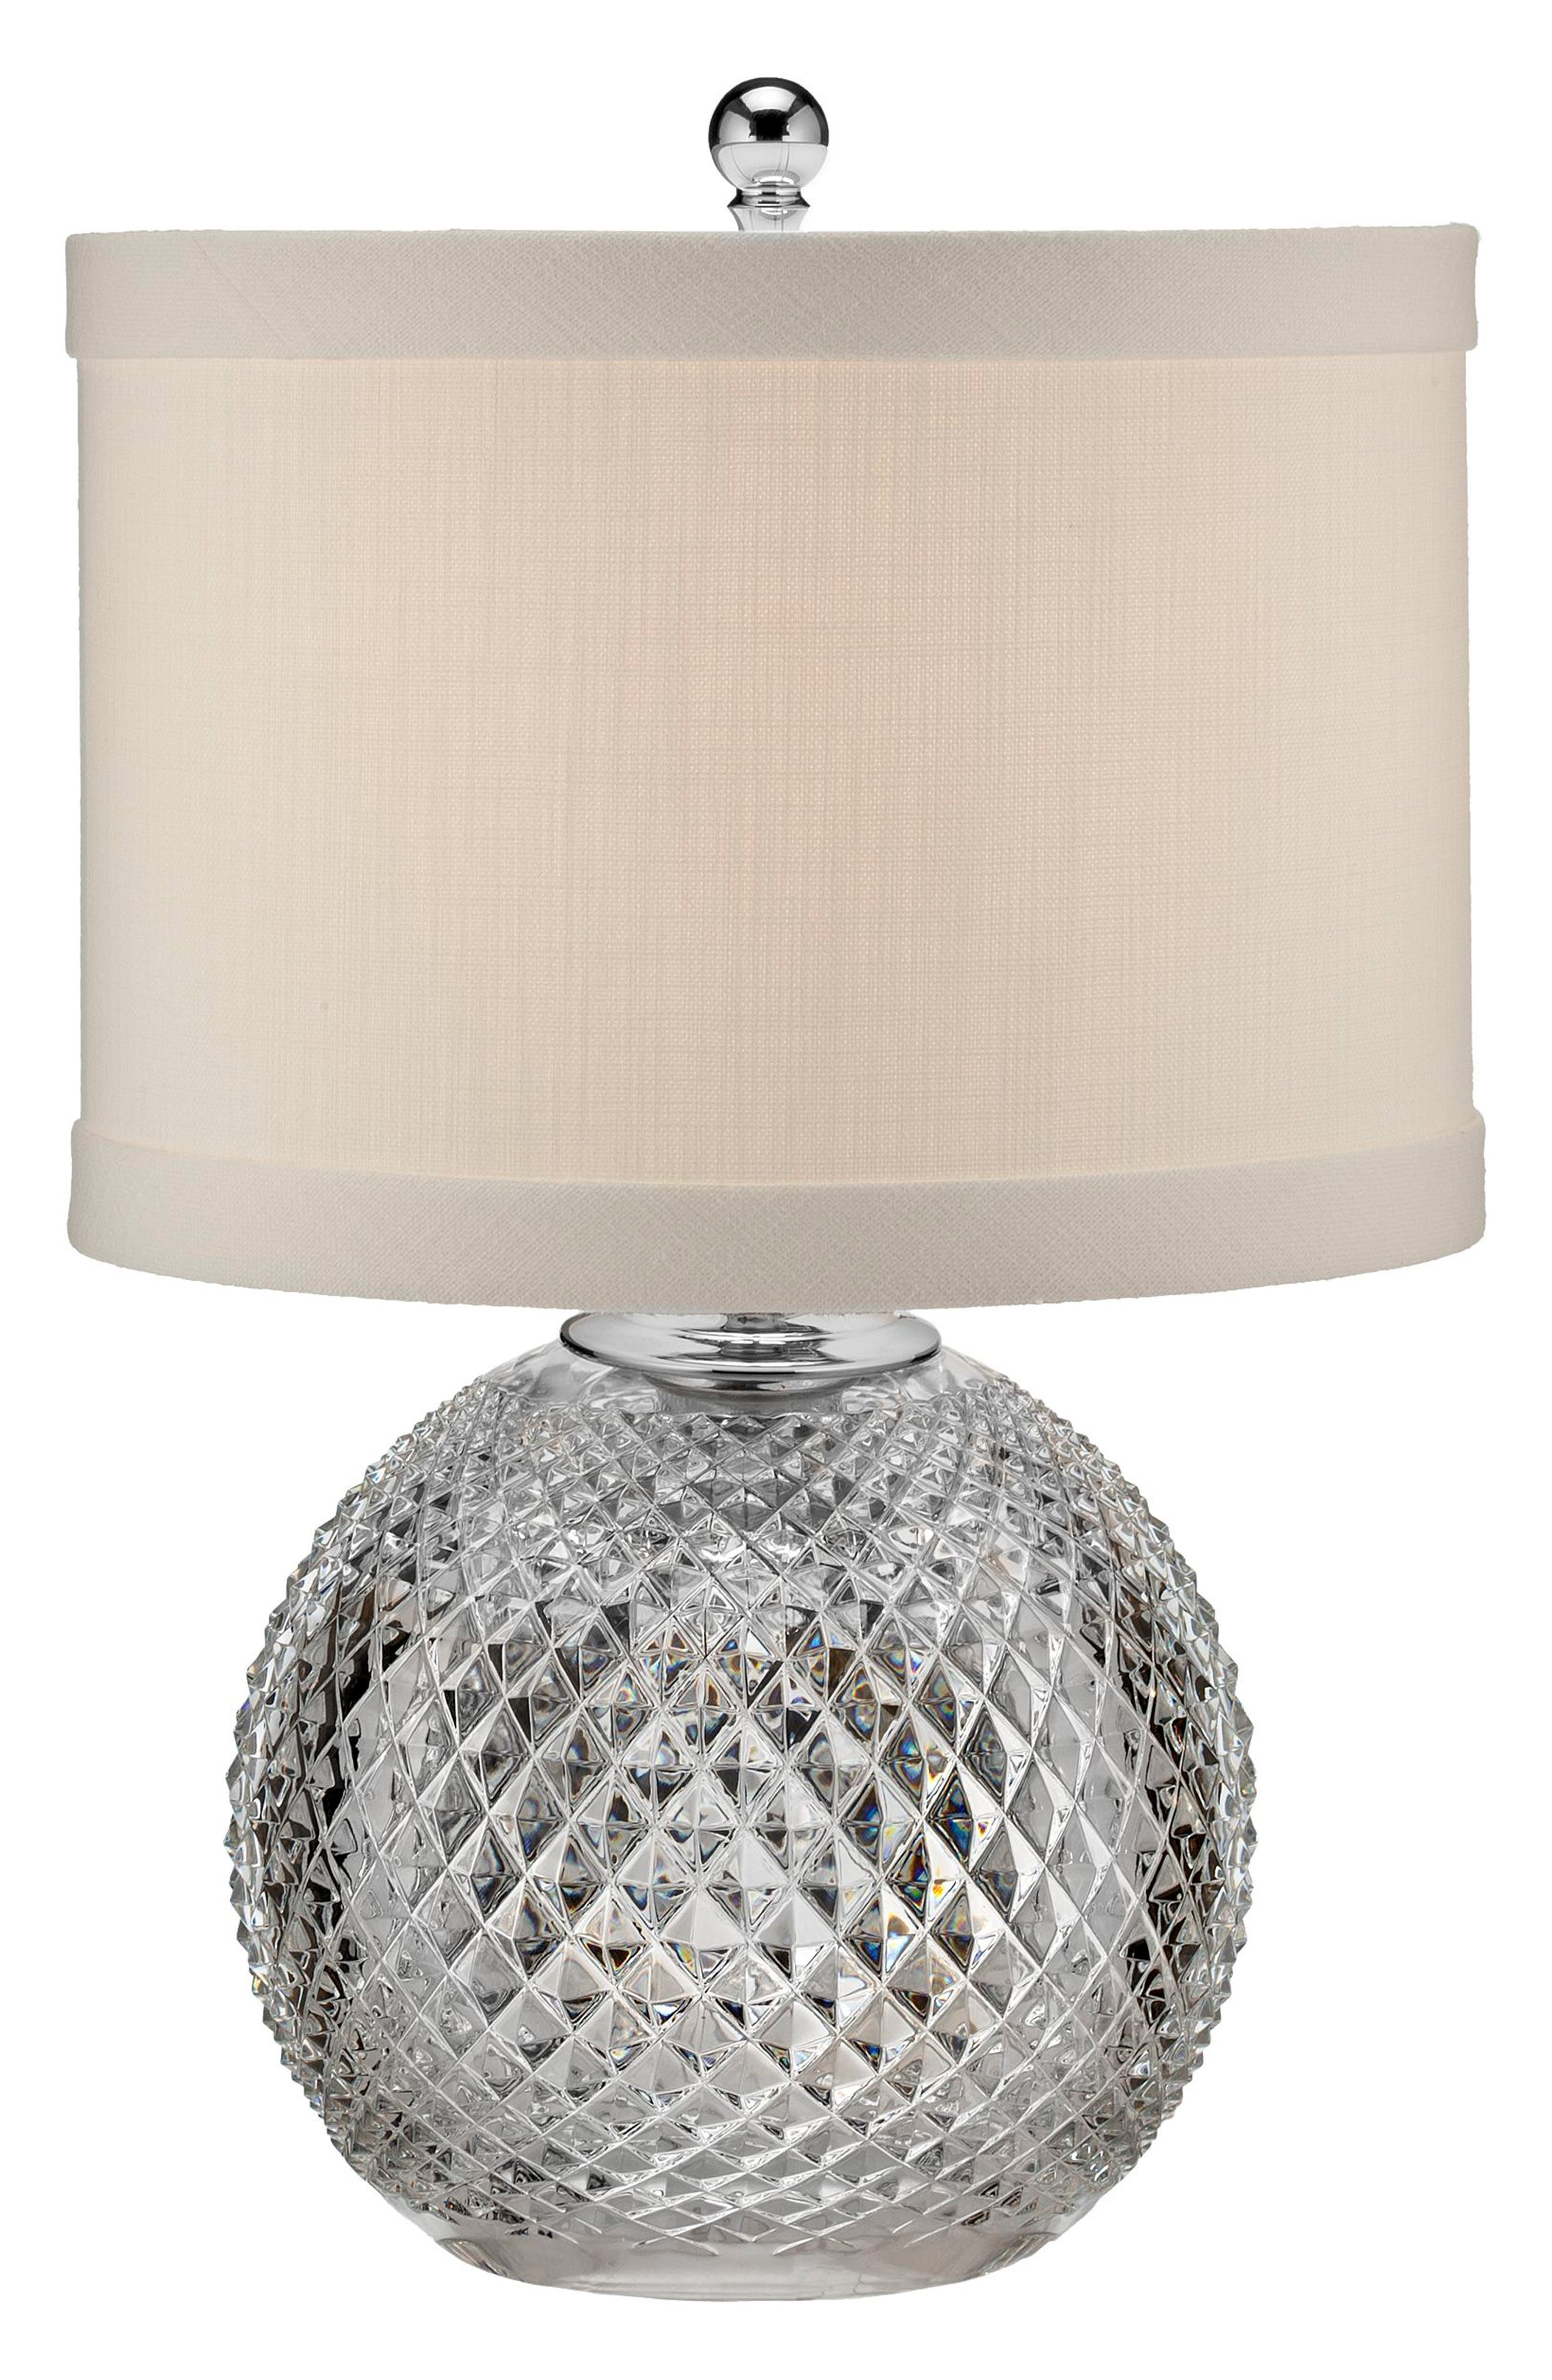 Alternate Image 1 Selected - Waterford Alana Crystal & Chrome Table Lamp